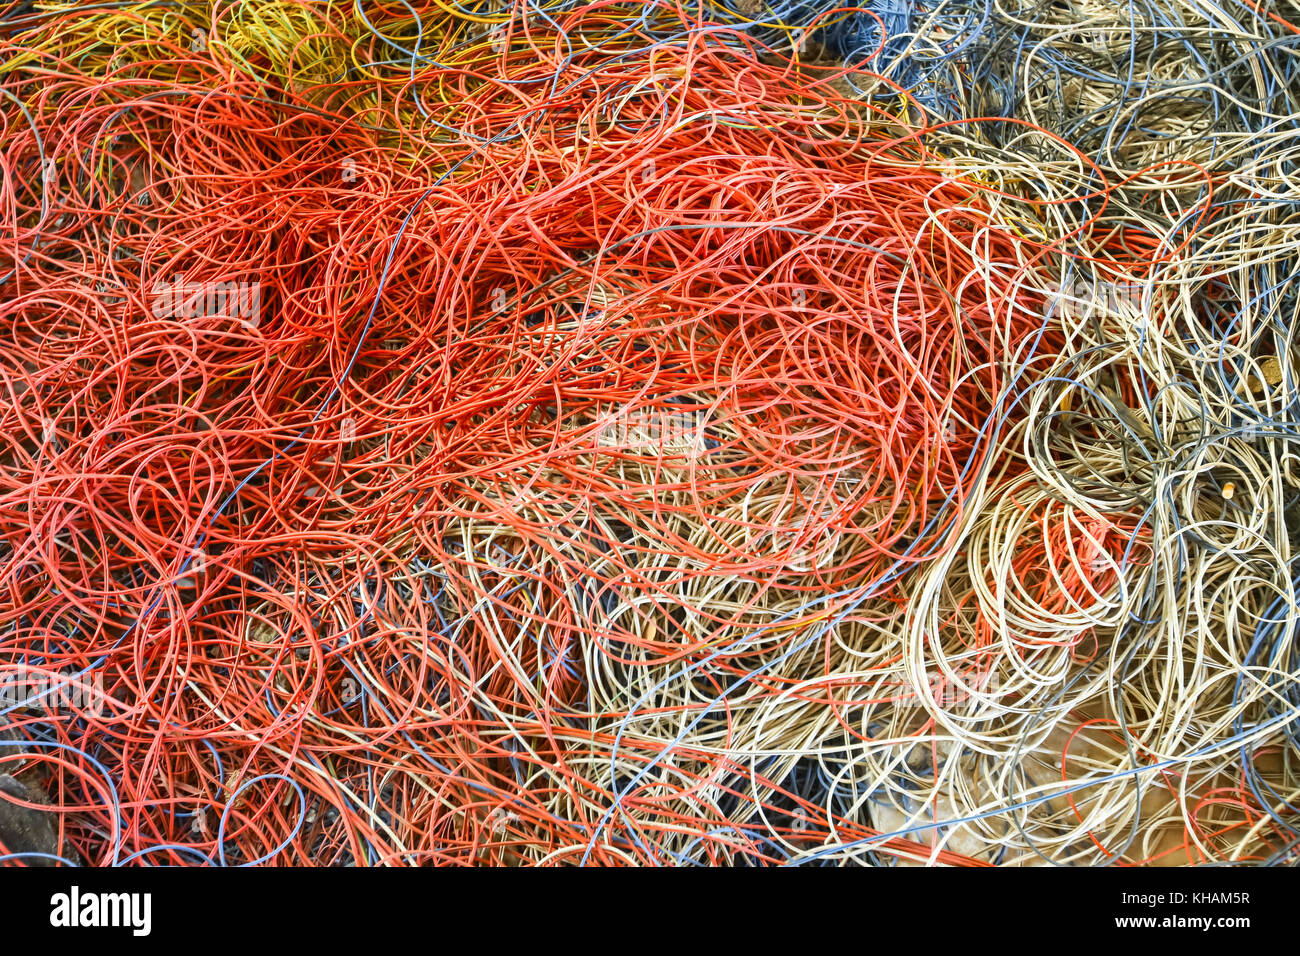 An abstract of colorful fishing net Stock Photo: 165577827 - Alamy